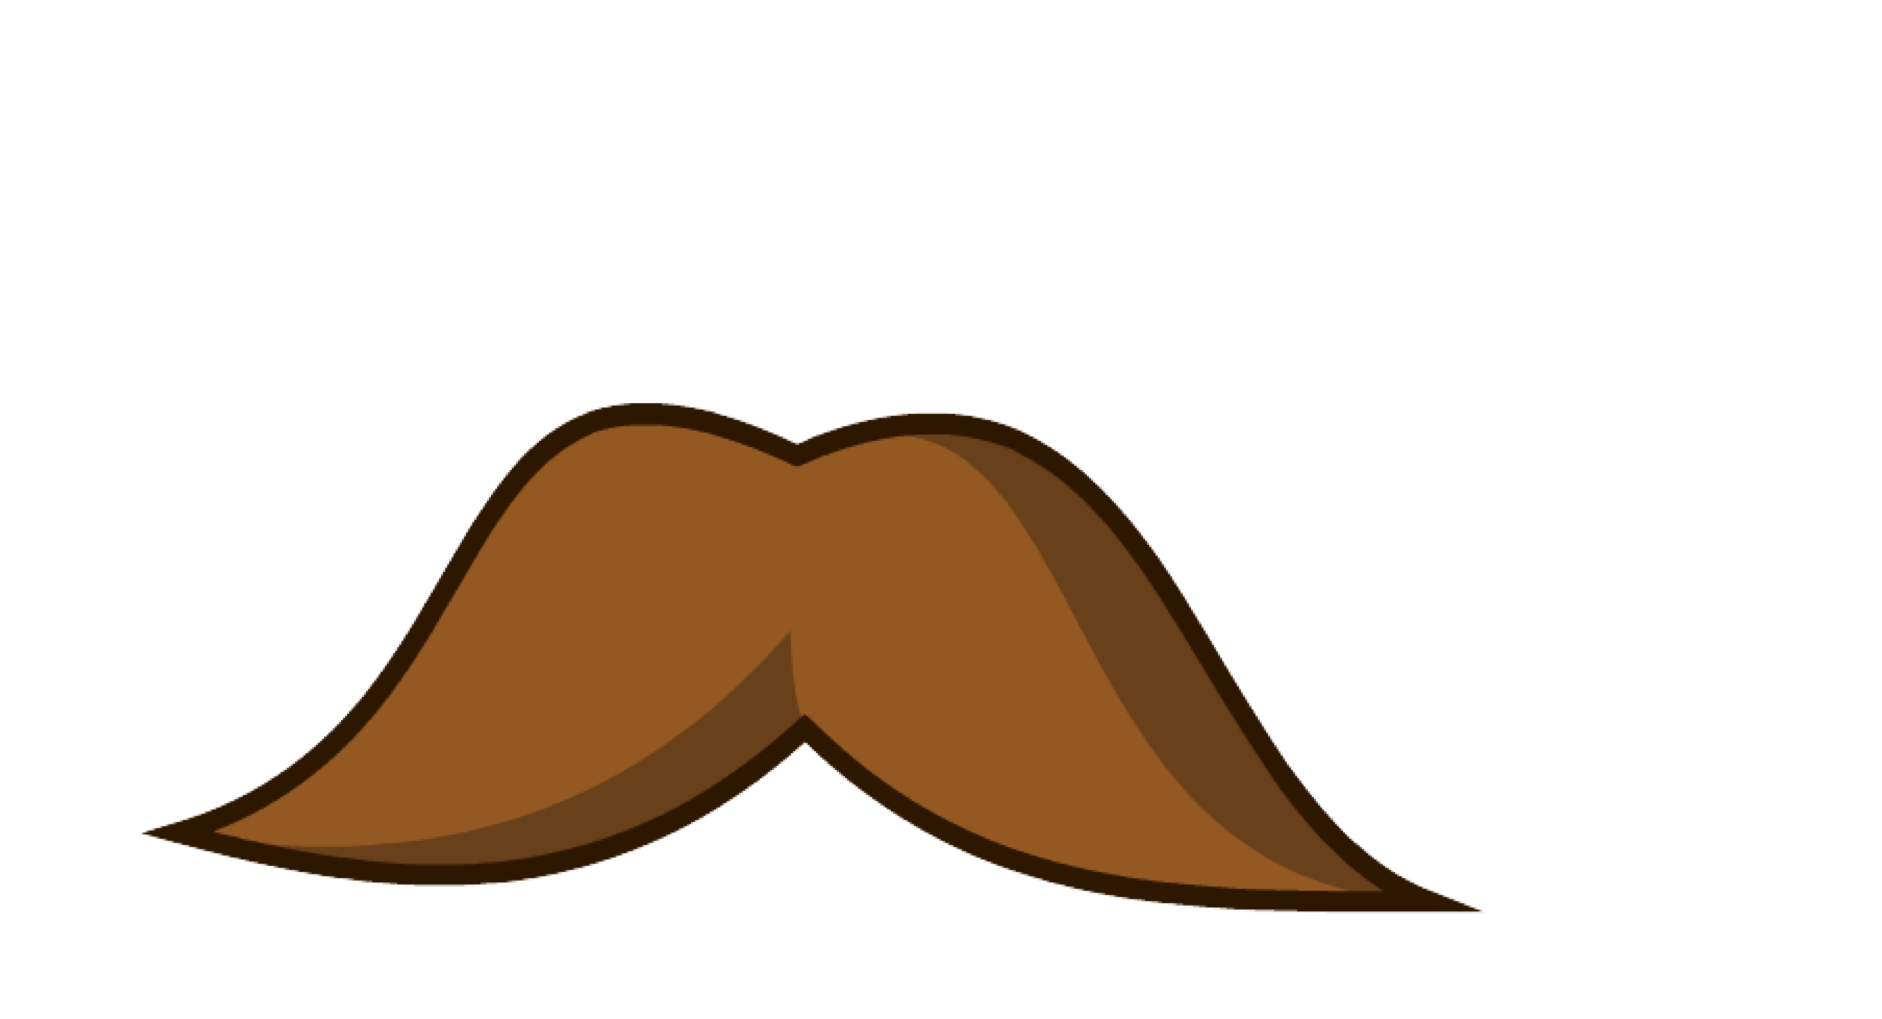 Moustache clipart file. Image png battle for